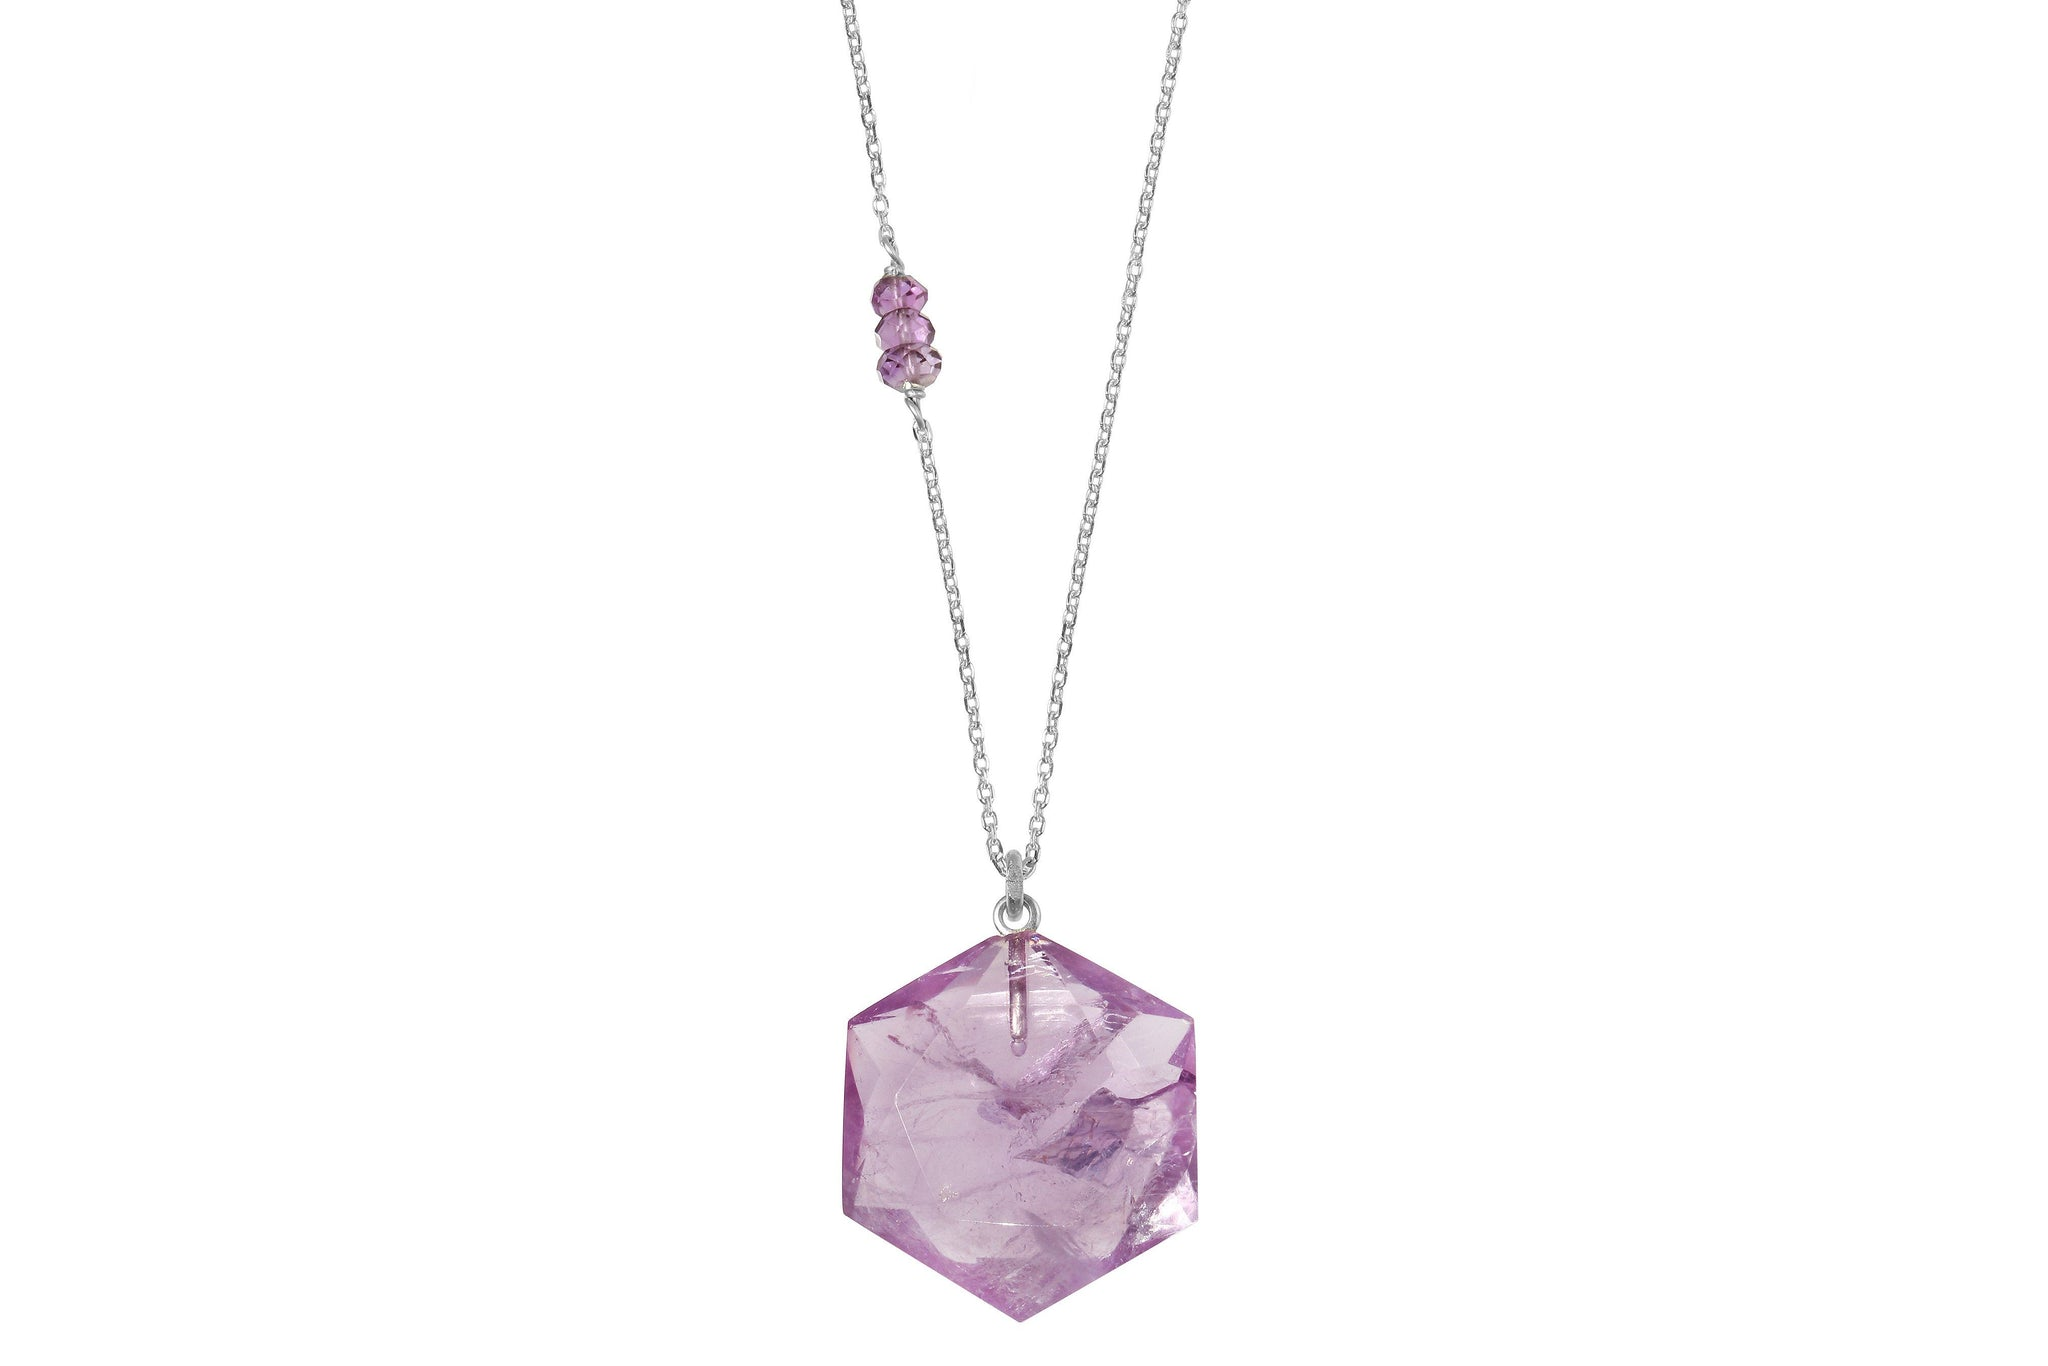 Hexagon Amethyst crystal sterling silver necklace